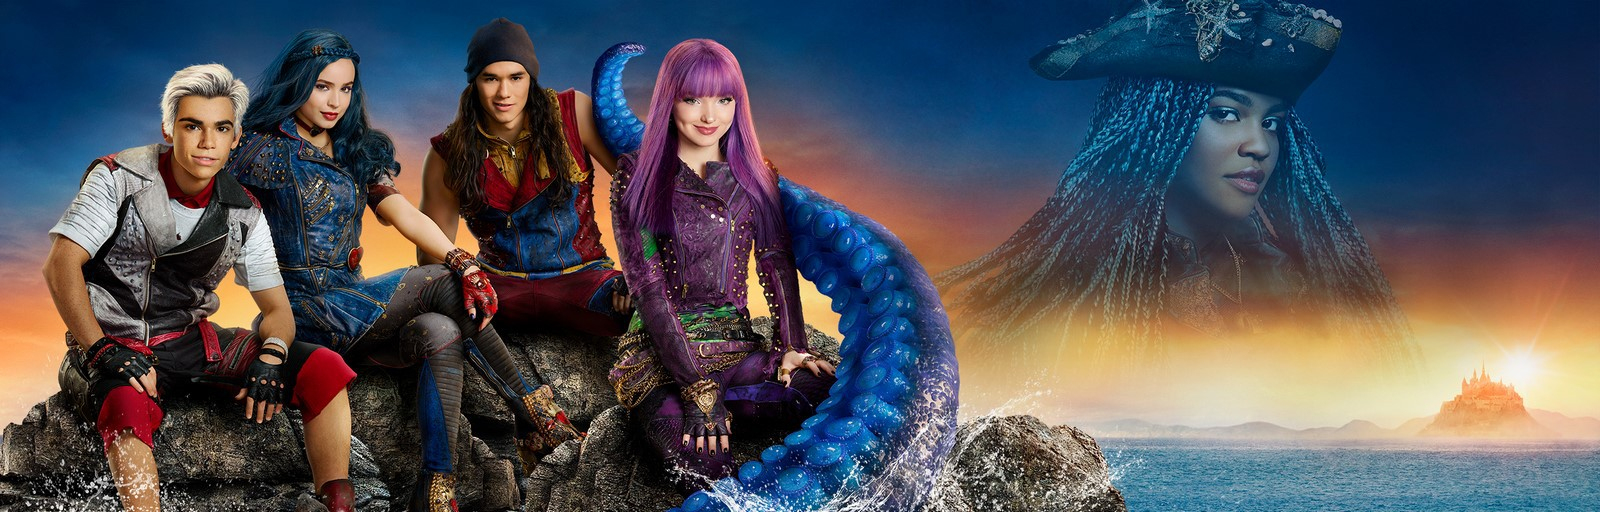 Descendants 2 – Notre Critique ! – Disney Gazette encequiconcerne Descendants Personnages